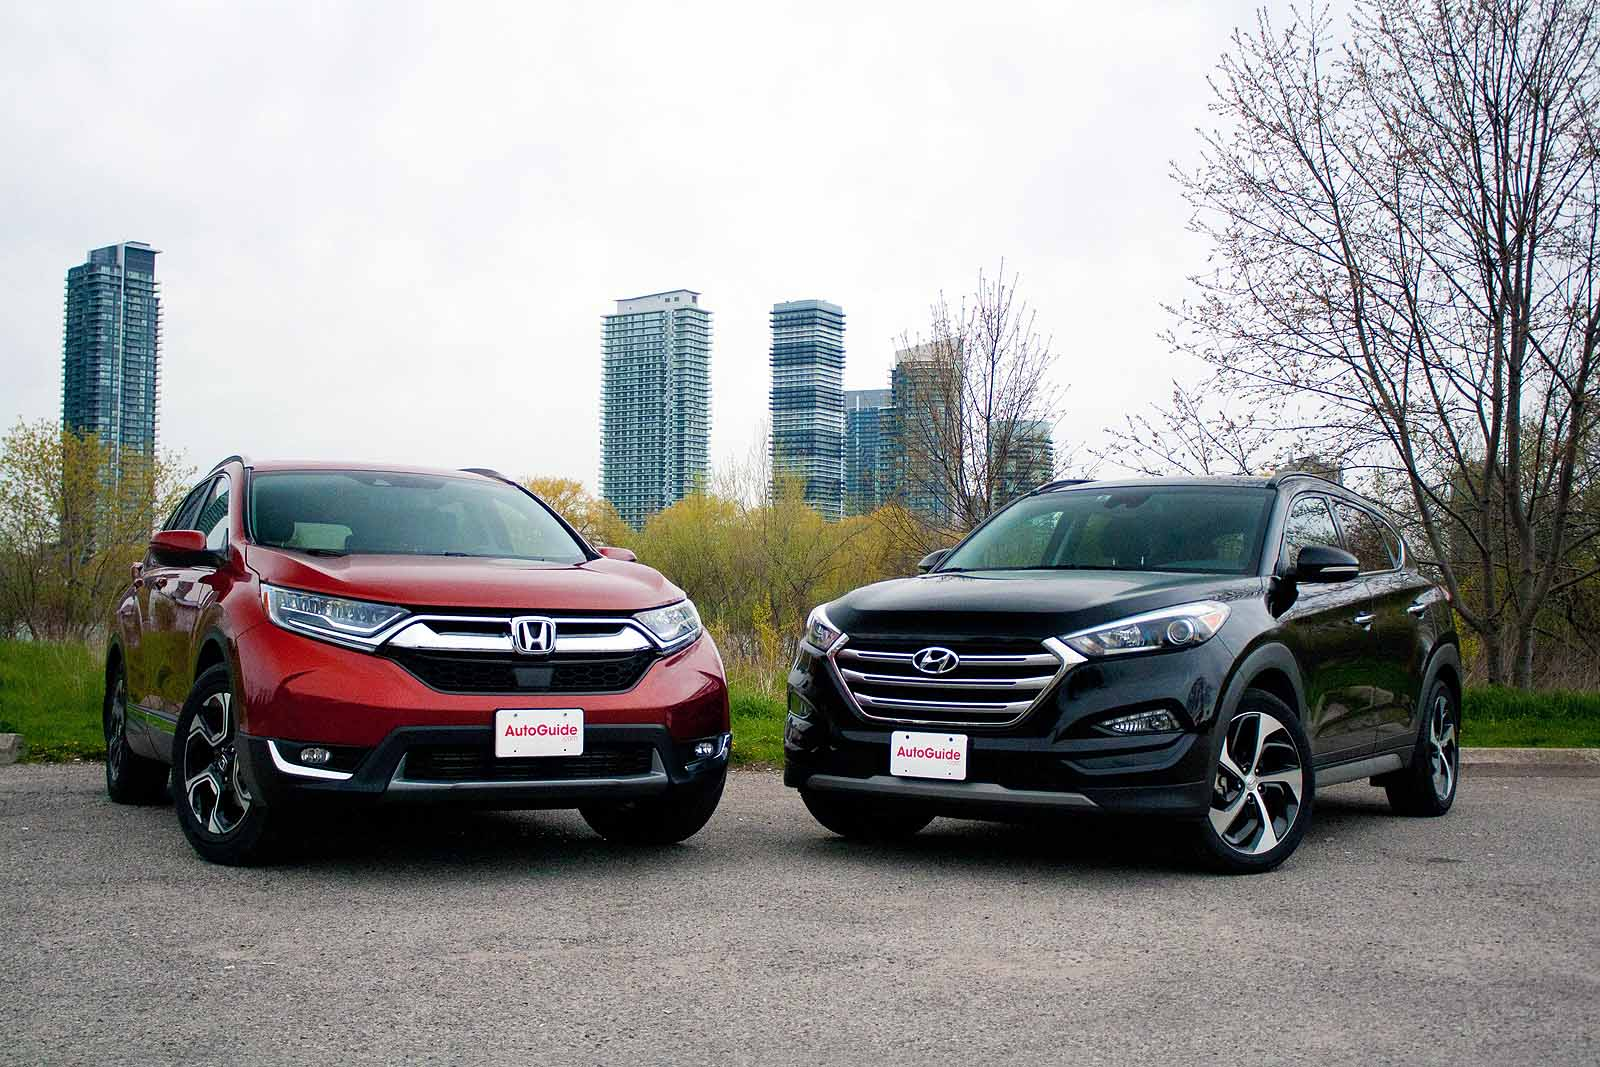 2017 Honda CR-V vs Hyundai Tucson Comparison - AutoGuide ...